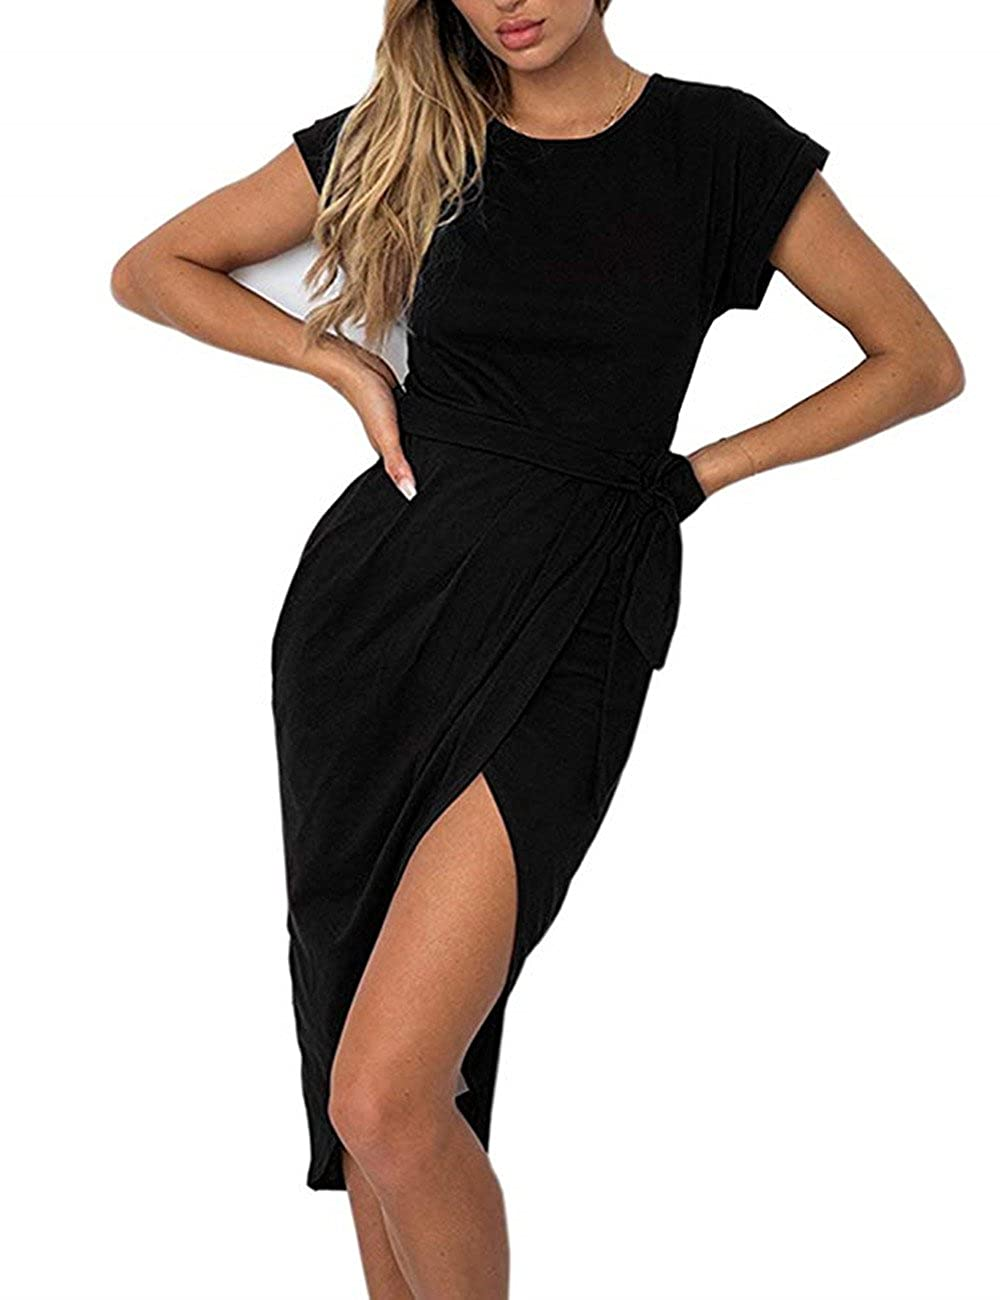 01 black pinklux Women's Casual Short Sleeve Front Slit Summer MidCalf Dress Sexy Solid Party Dress with Belt